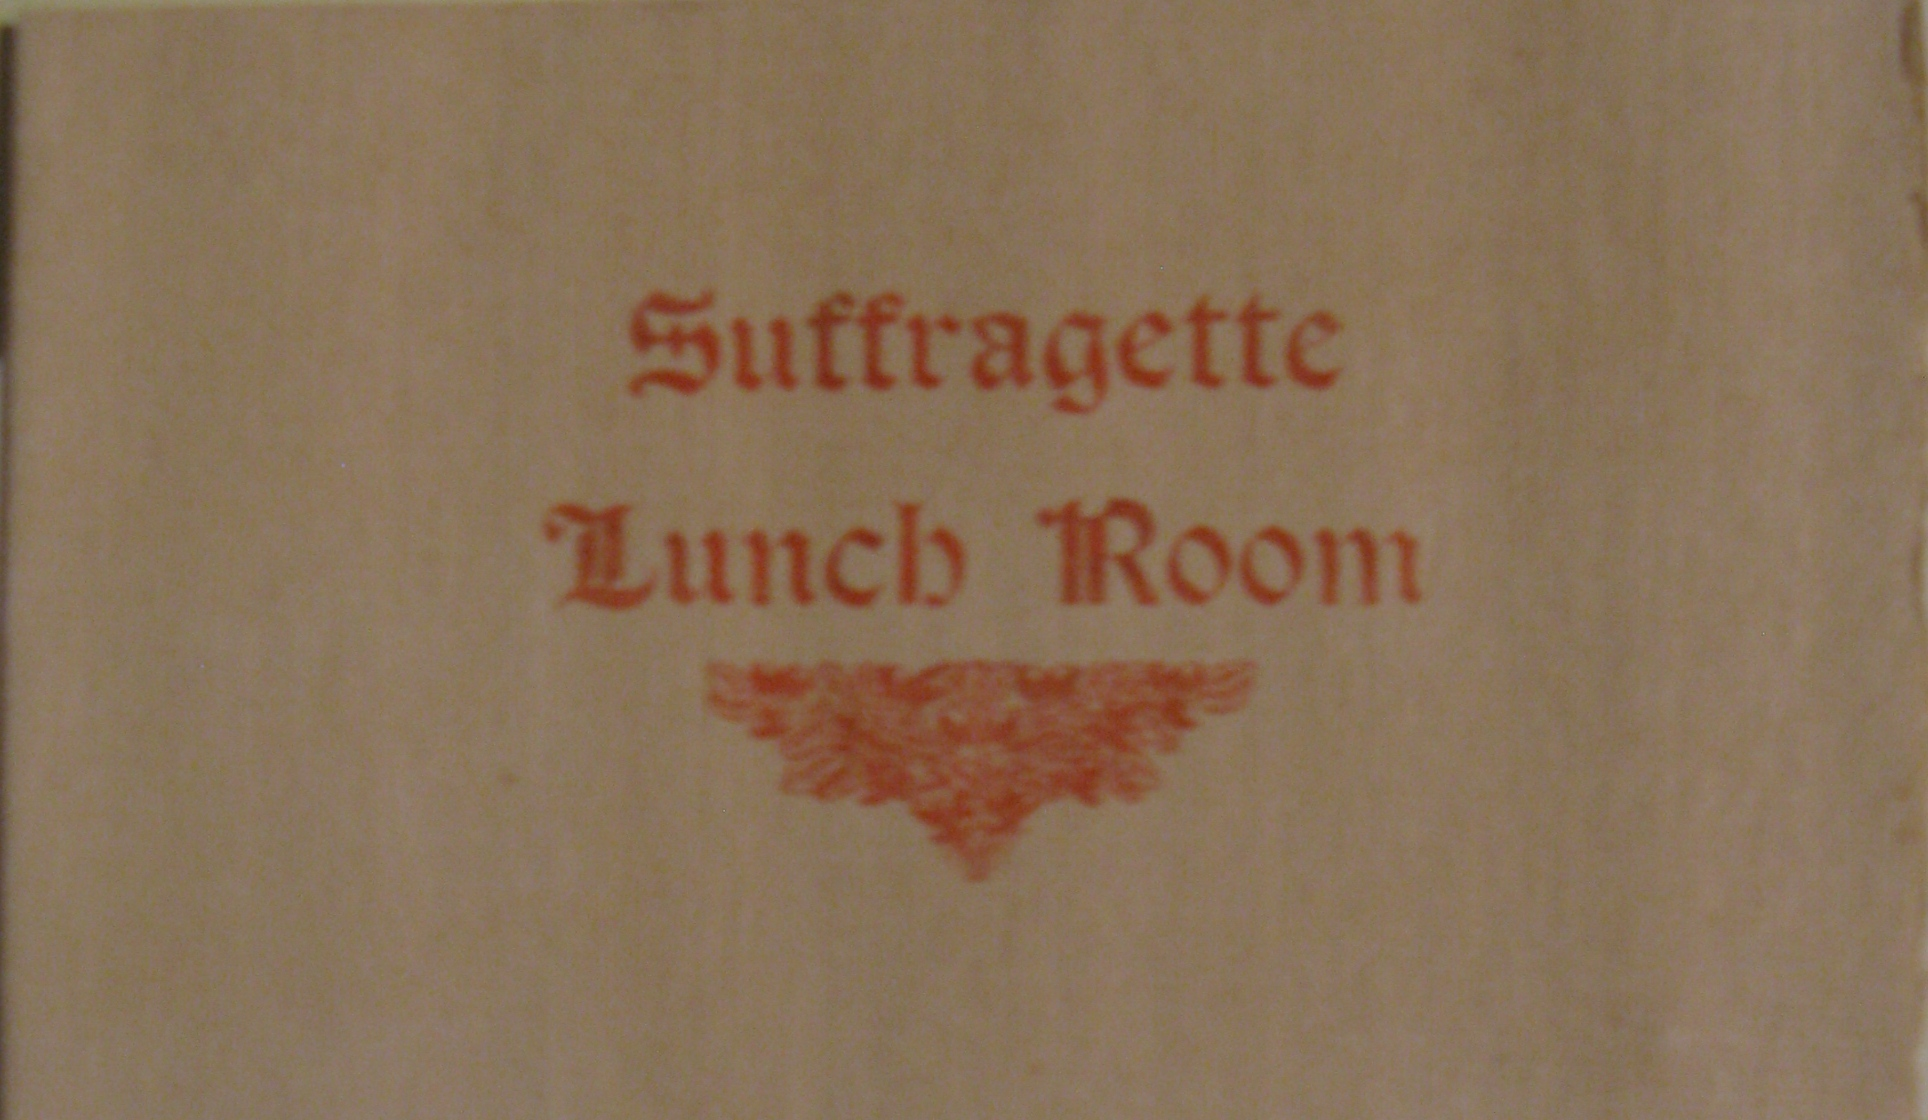 cropped version, suffragette lunch room, image 2